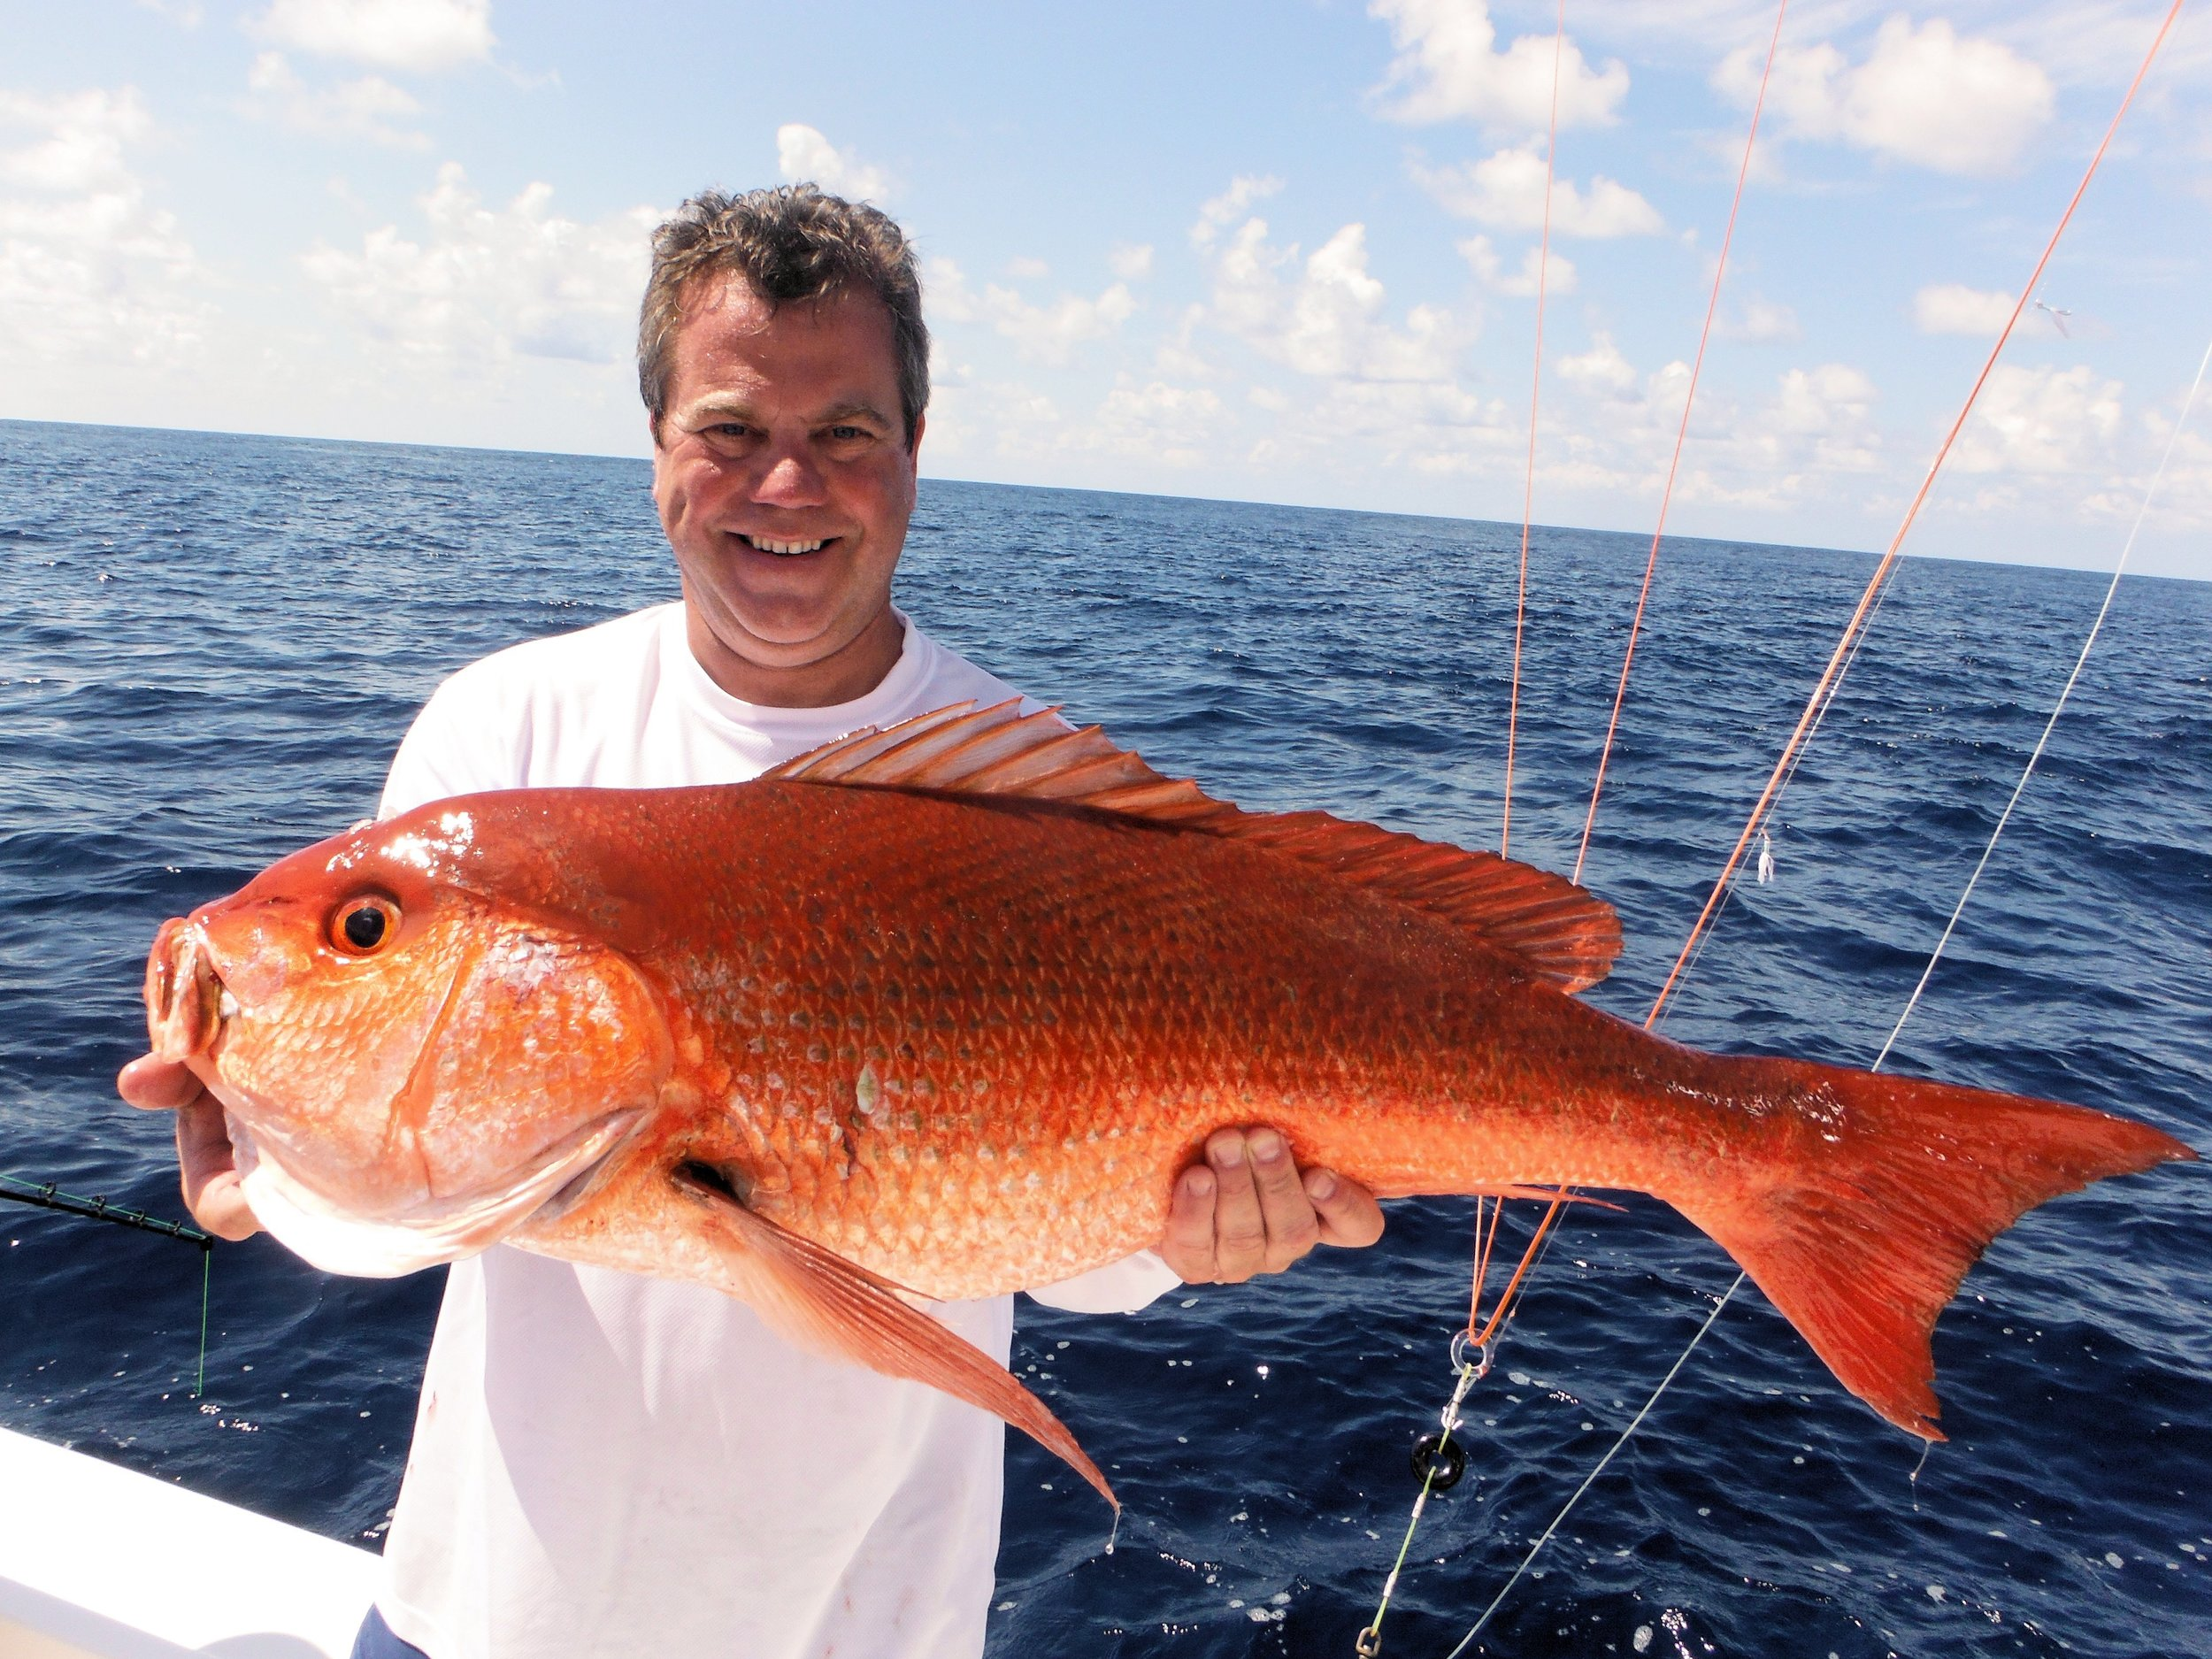 Moonwalker Owner, Kenny Bertsch with 35lb. snapper. January 26, 2014